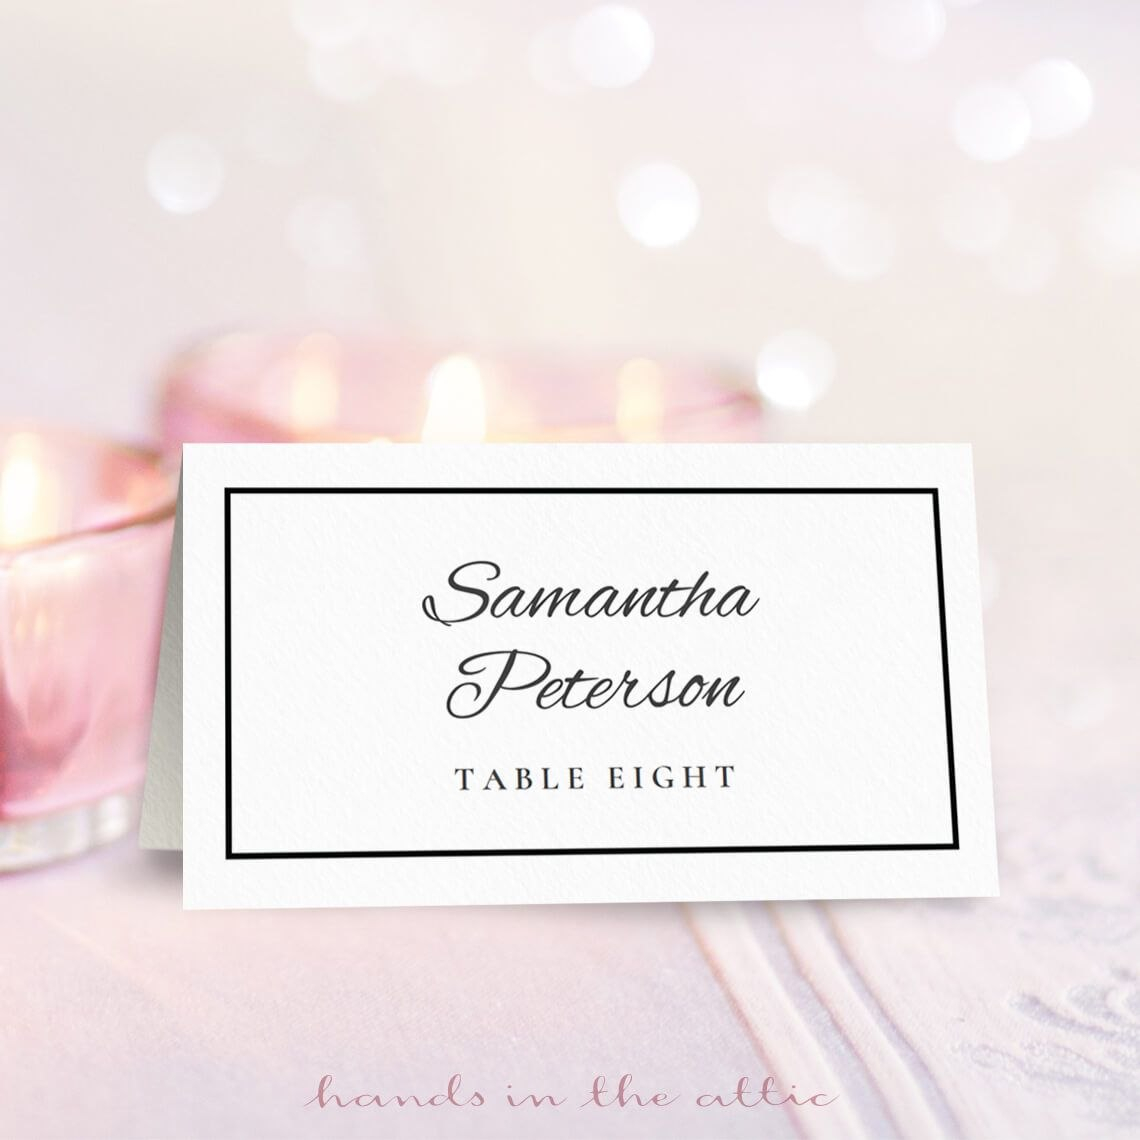 Wedding Place Card Template  Free On Handsintheattic  Free Throughout Imprintable Place Cards Template